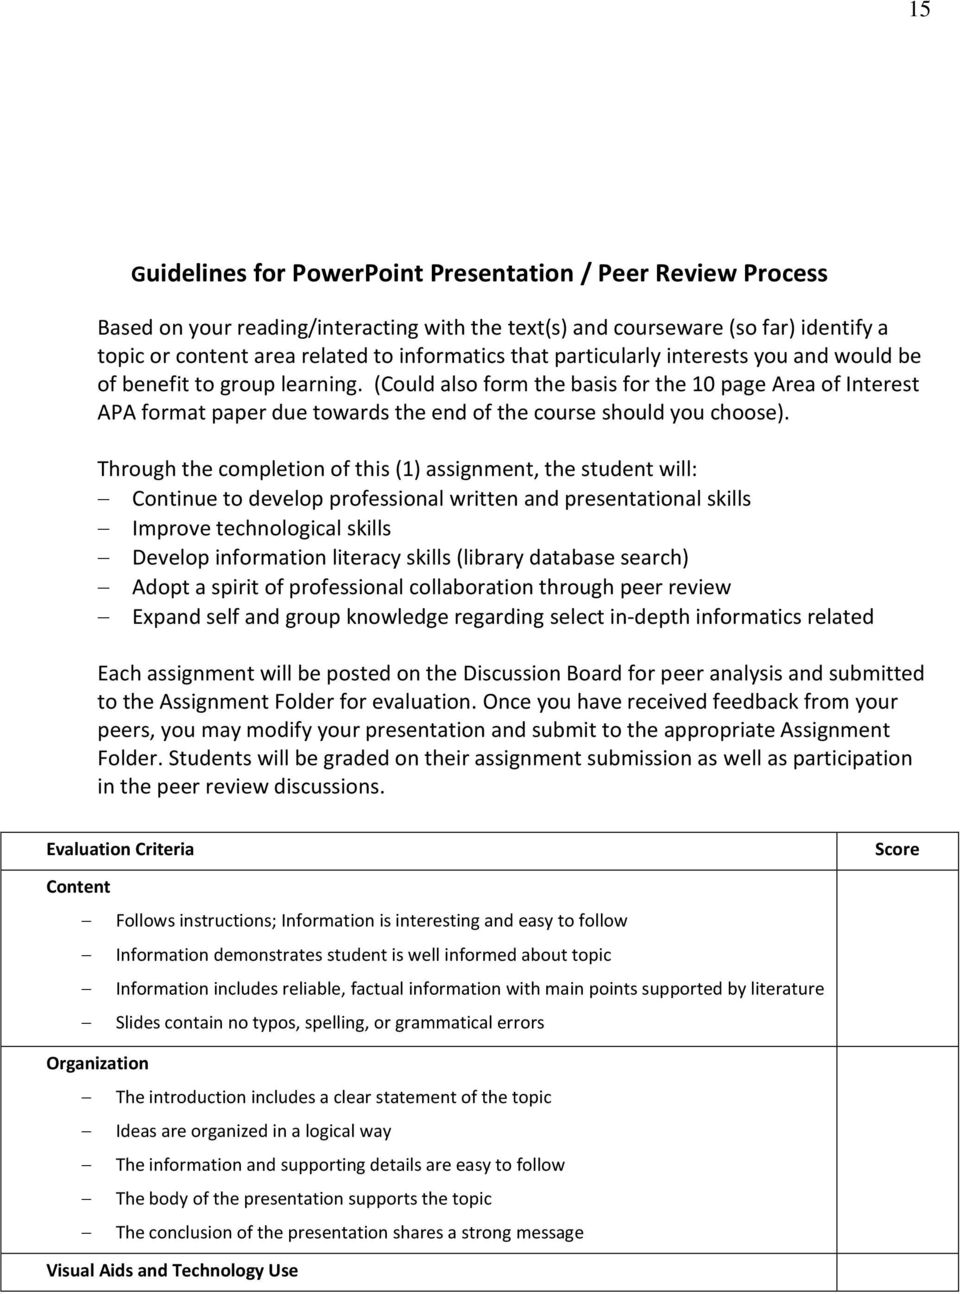 Through the completion of this (1) assignment, the student will: Continue to develop professional written and presentational skills Improve technological skills Develop information literacy skills